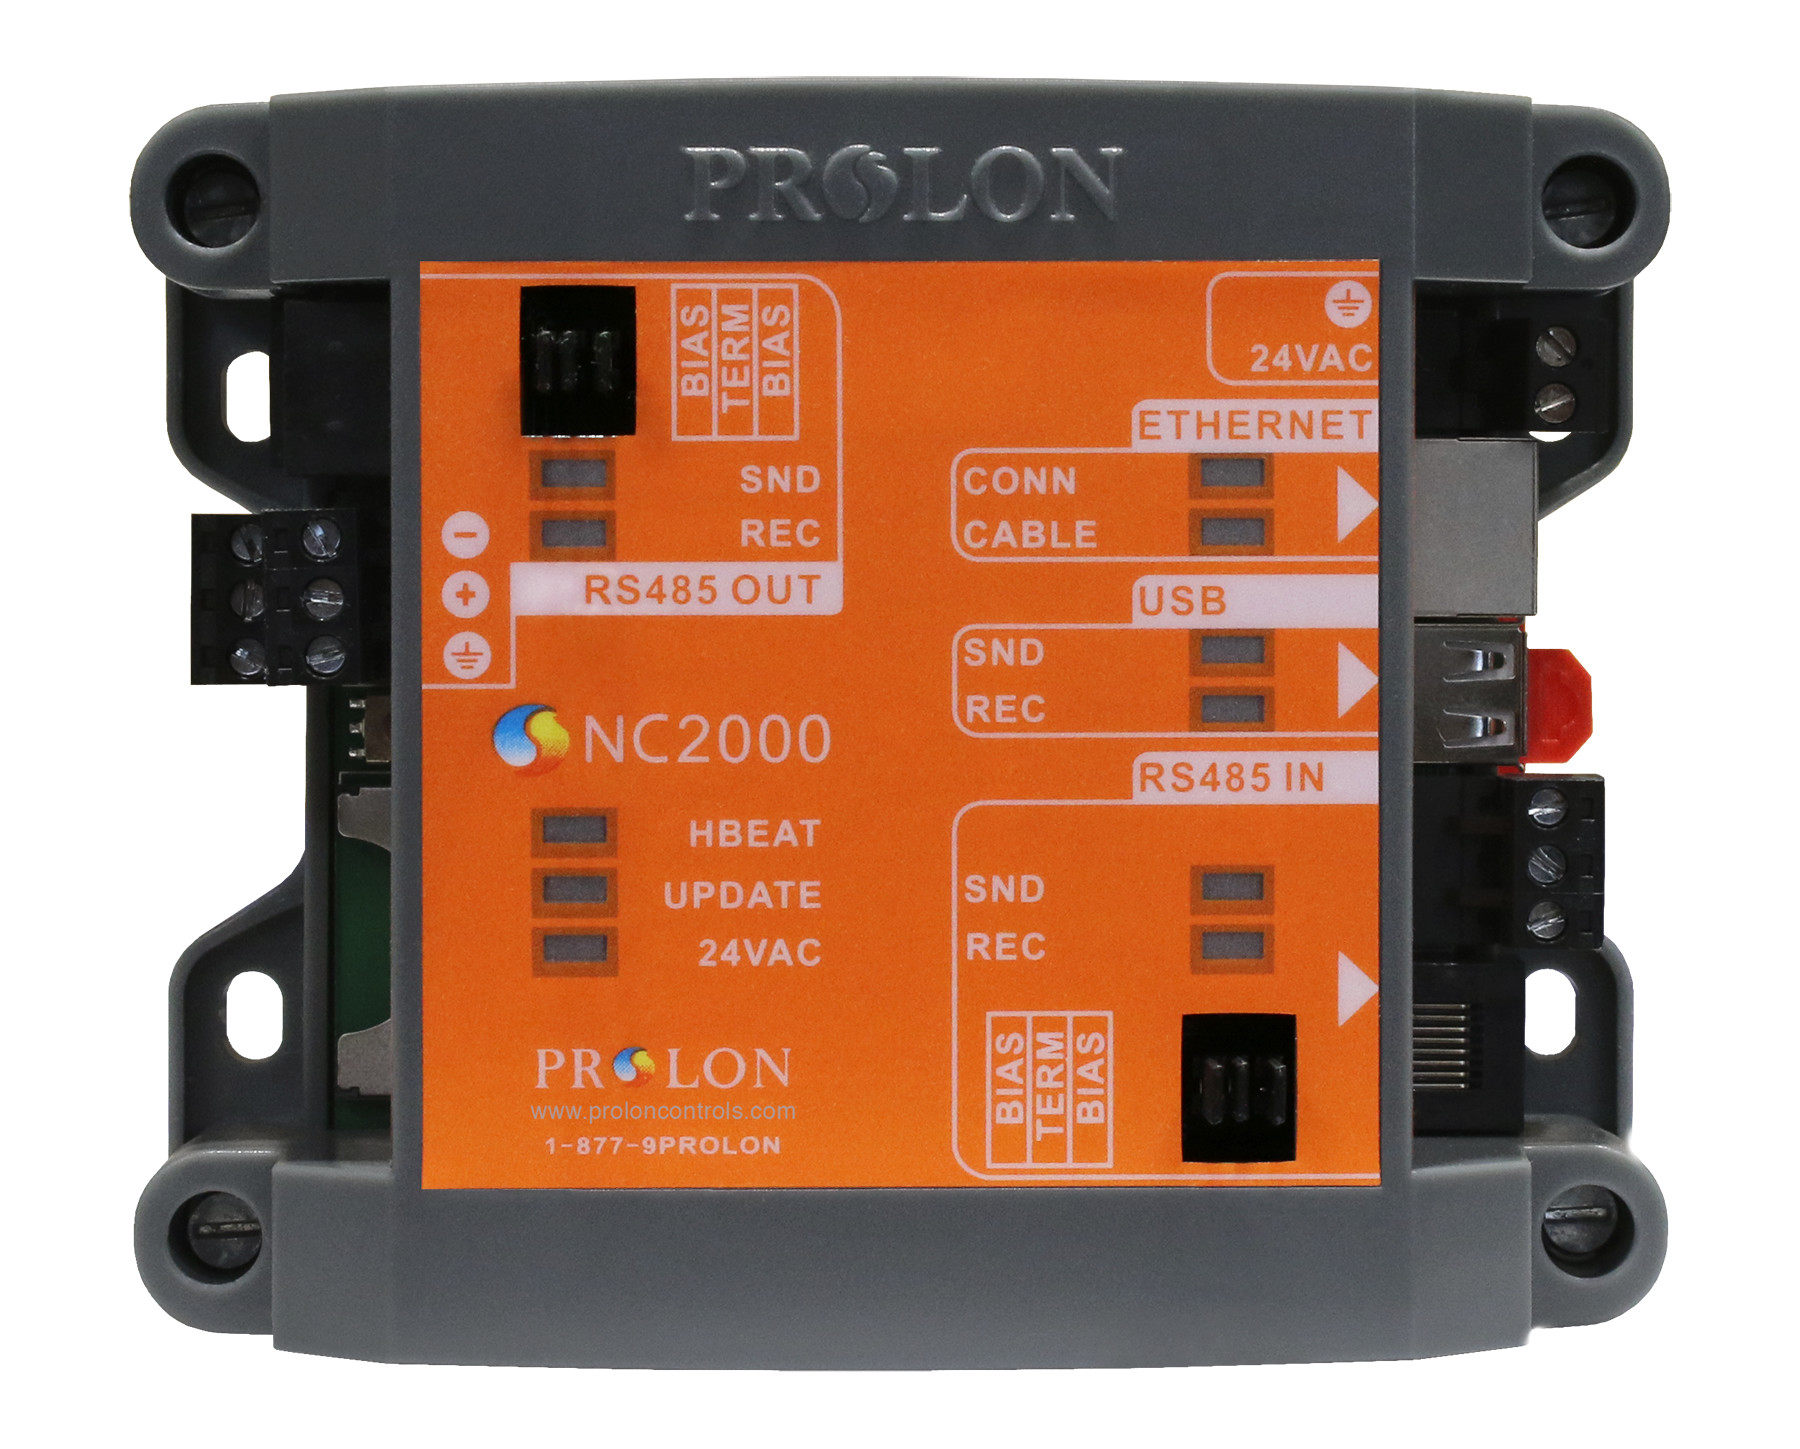 Pl Nc2000 Prolon Modbus Tcp Ip To Rs485 Network Controller